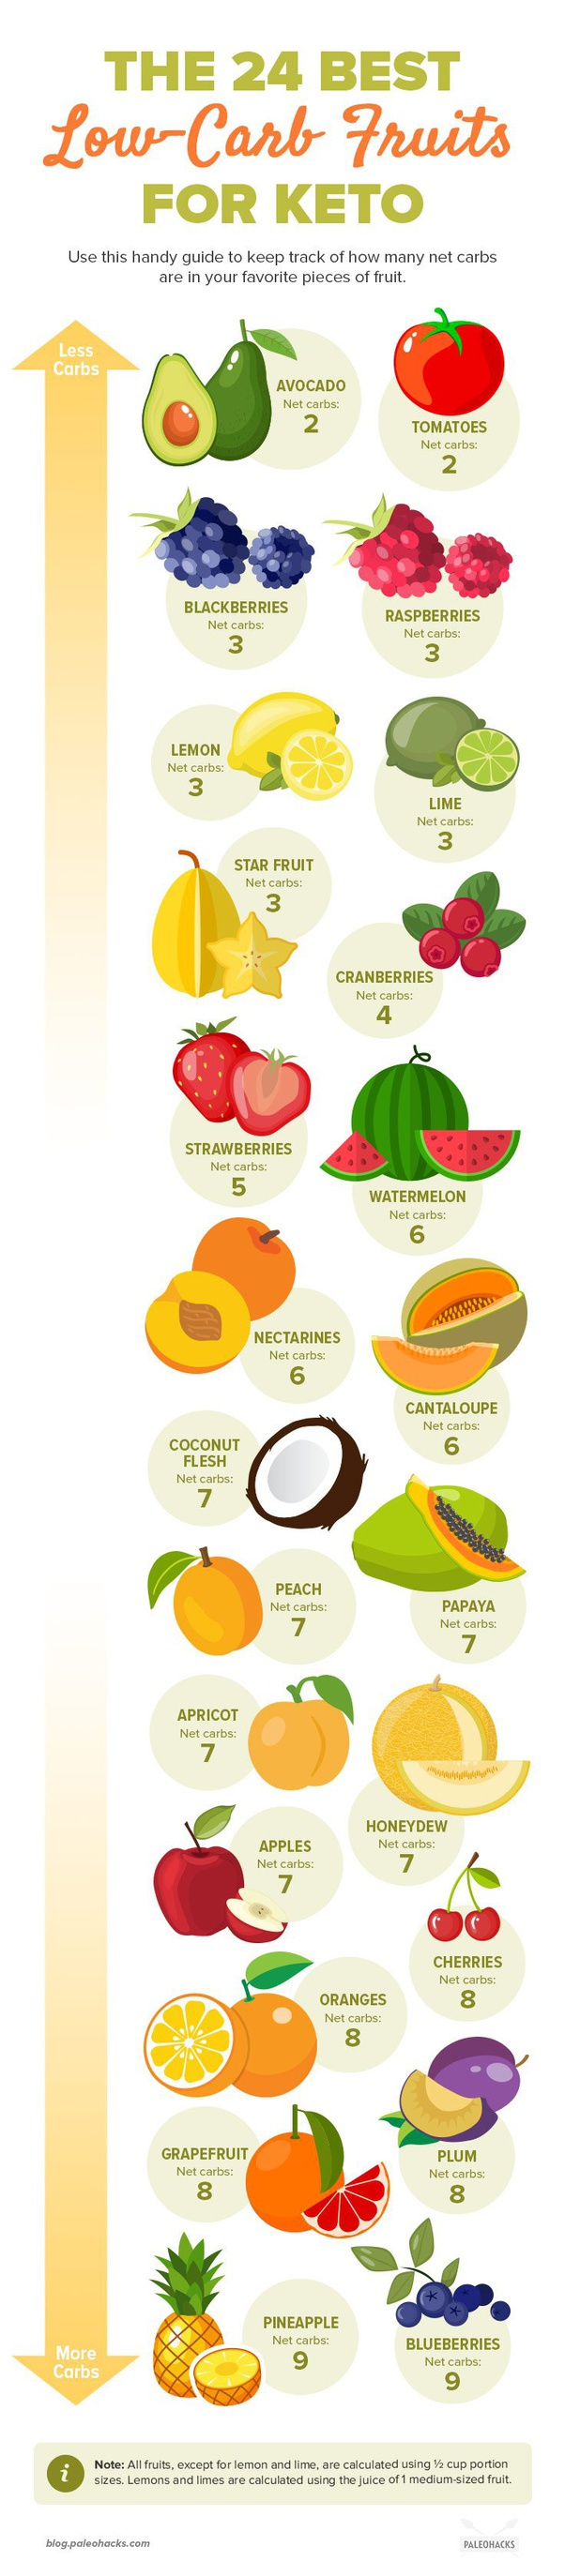 what fruit can i eat on keto diet?